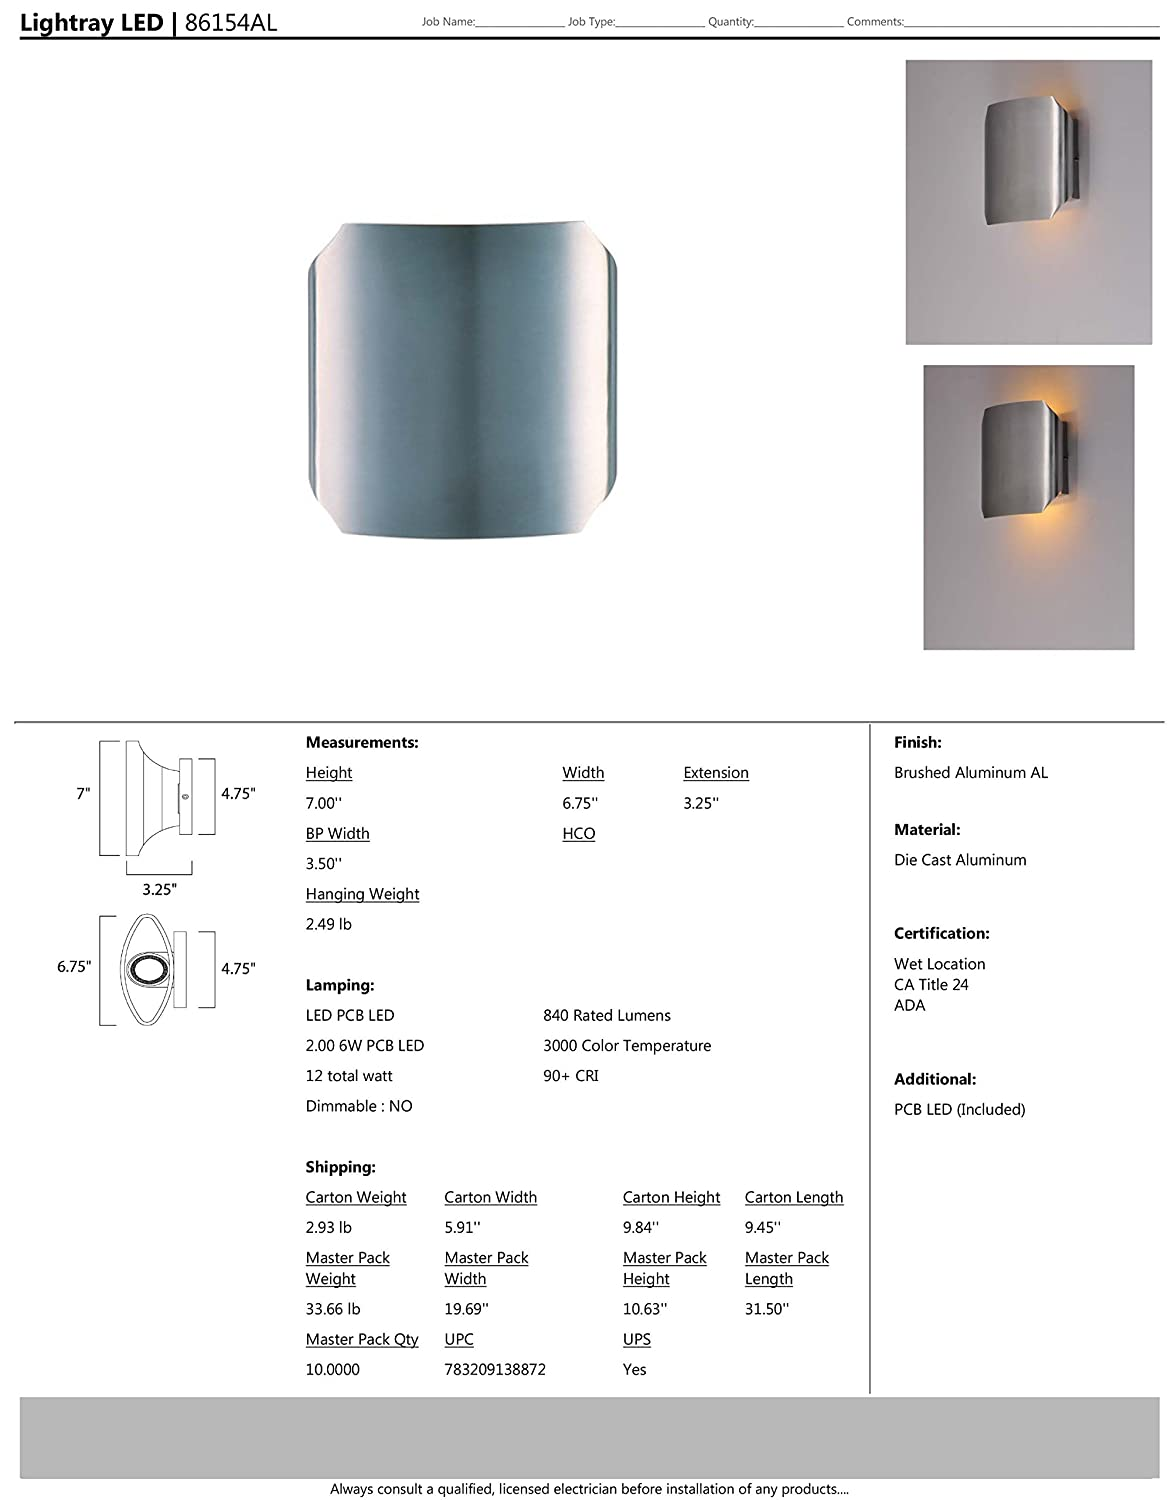 PCB LED Bulb Shade Material 60W Max. Brushed Aluminum Finish Dry Safety Rating Standard Dimmable Maxim 86154AL Lightray LED Outdoor Wall Sconce Rated Lumens Glass